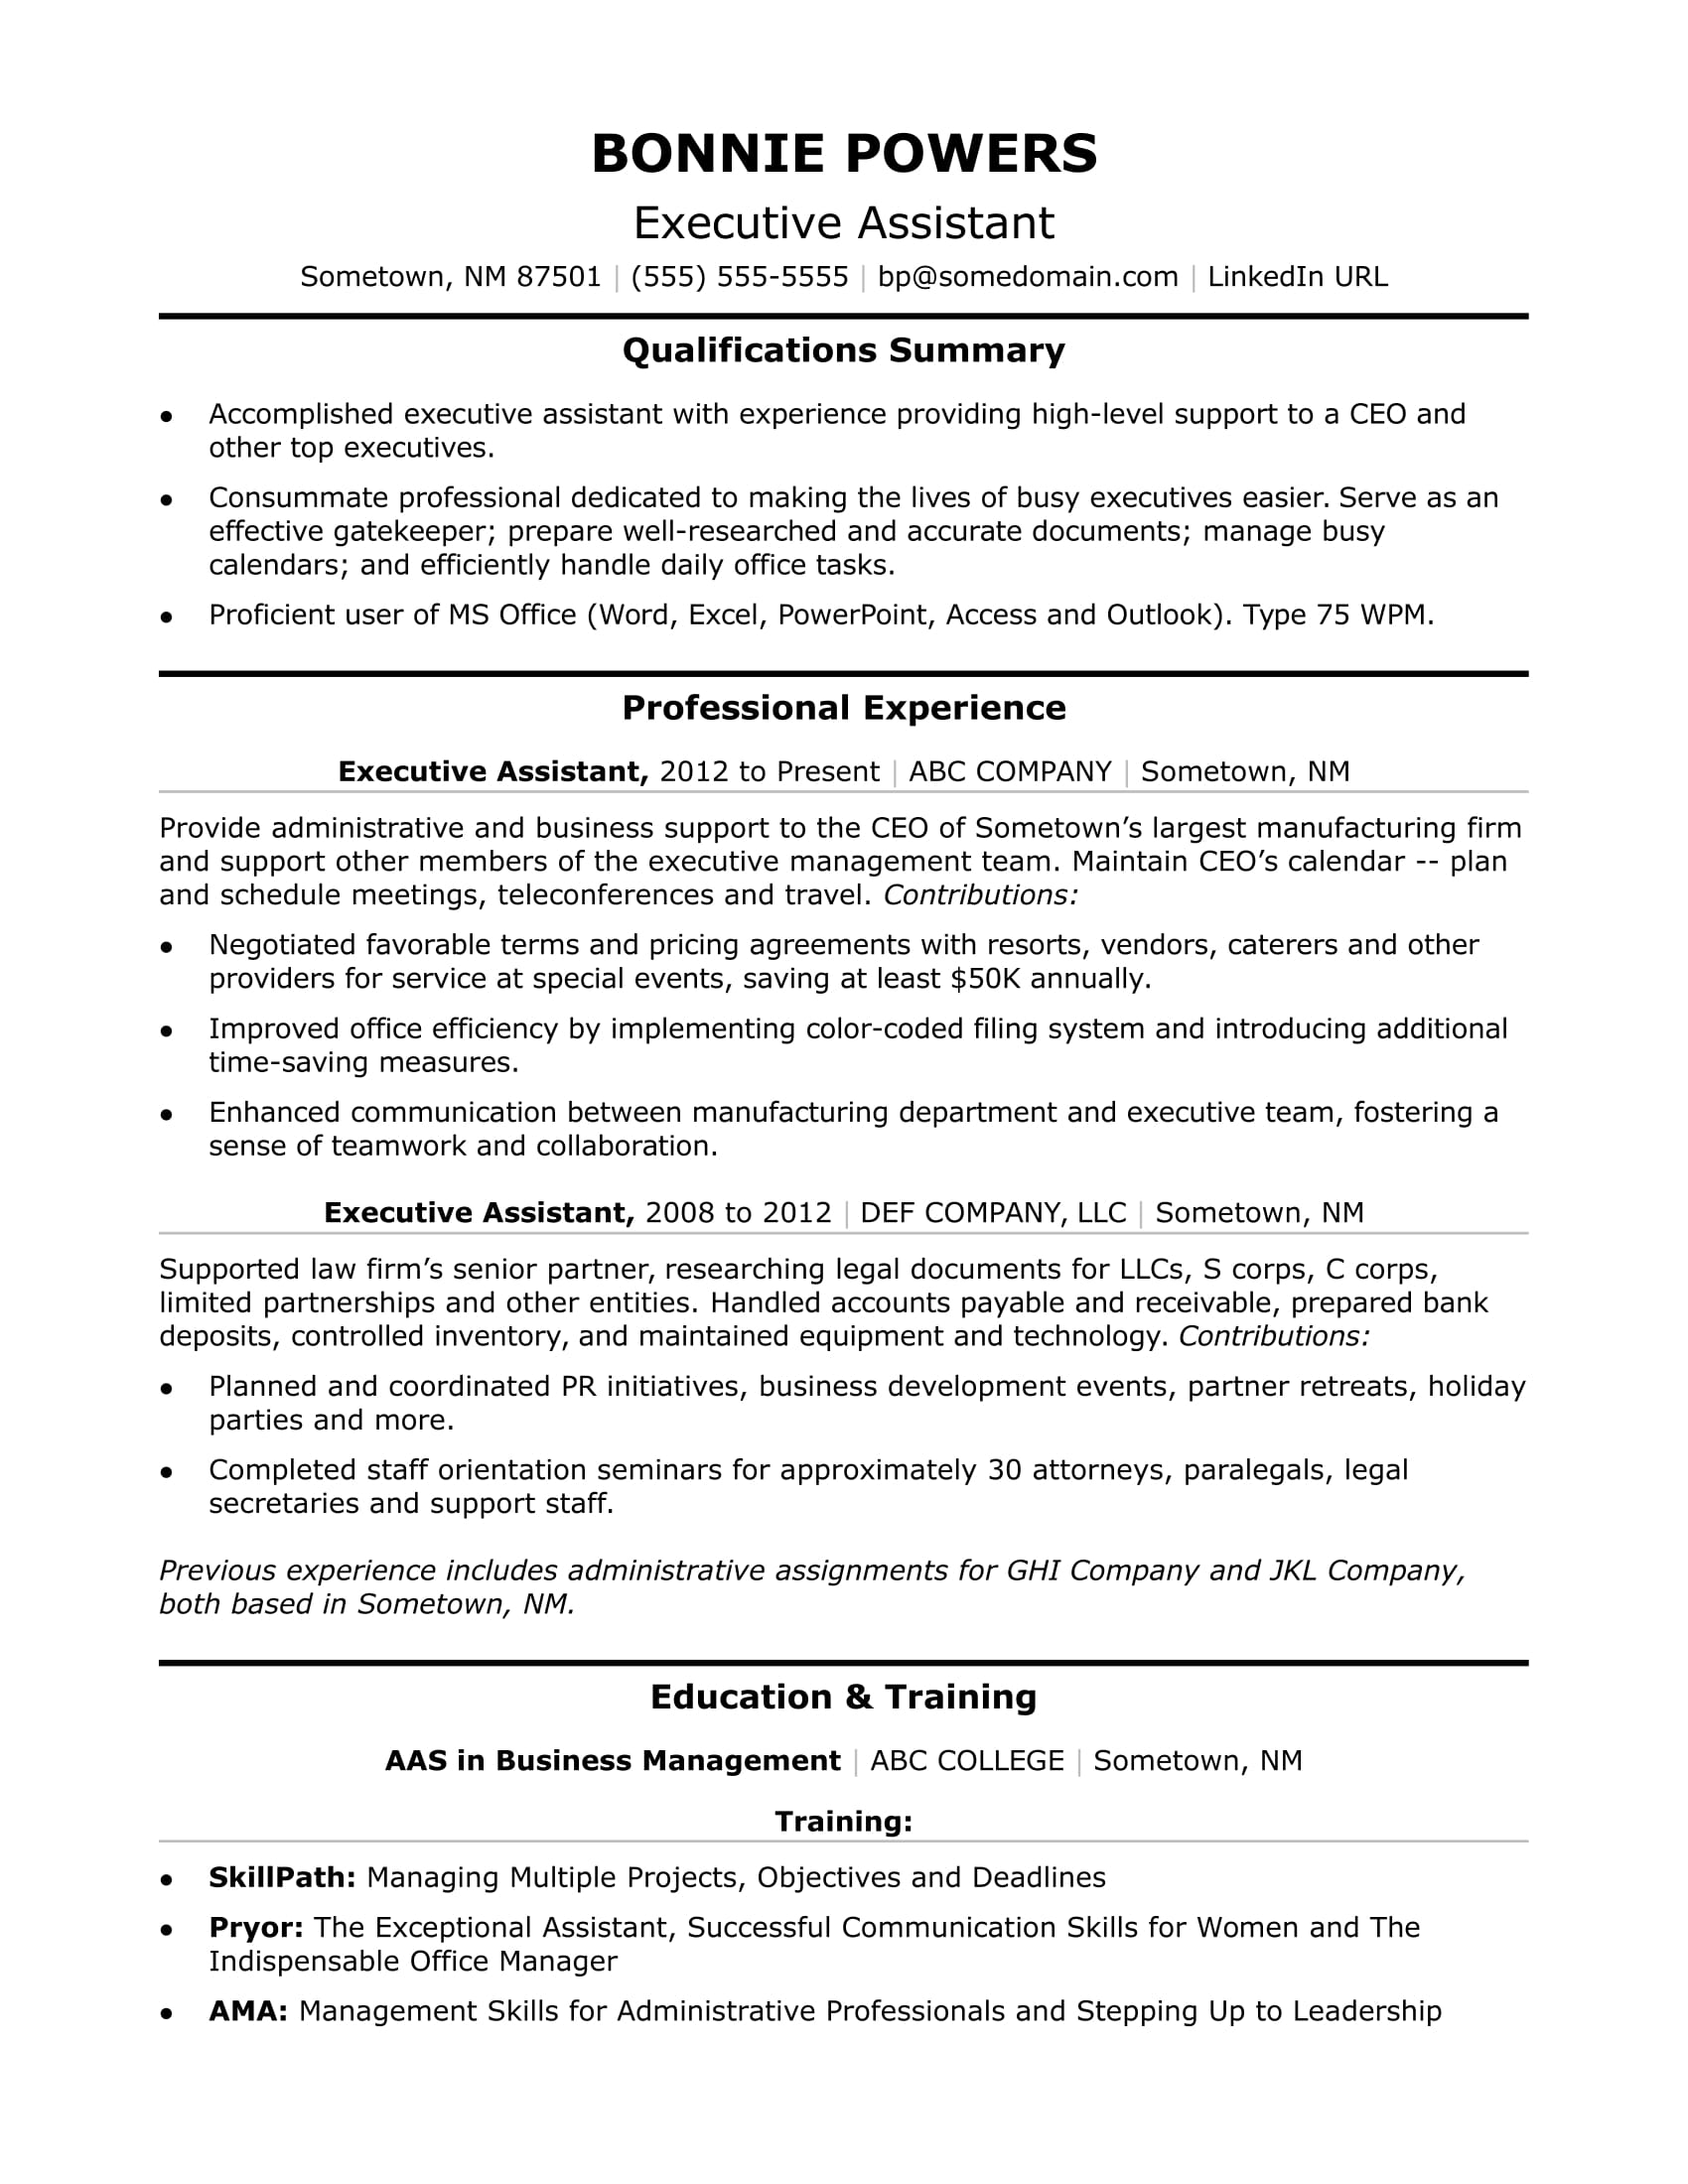 executive administrative assistant resume sample monster format for back office opera Resume Resume Format For Back Office Executive